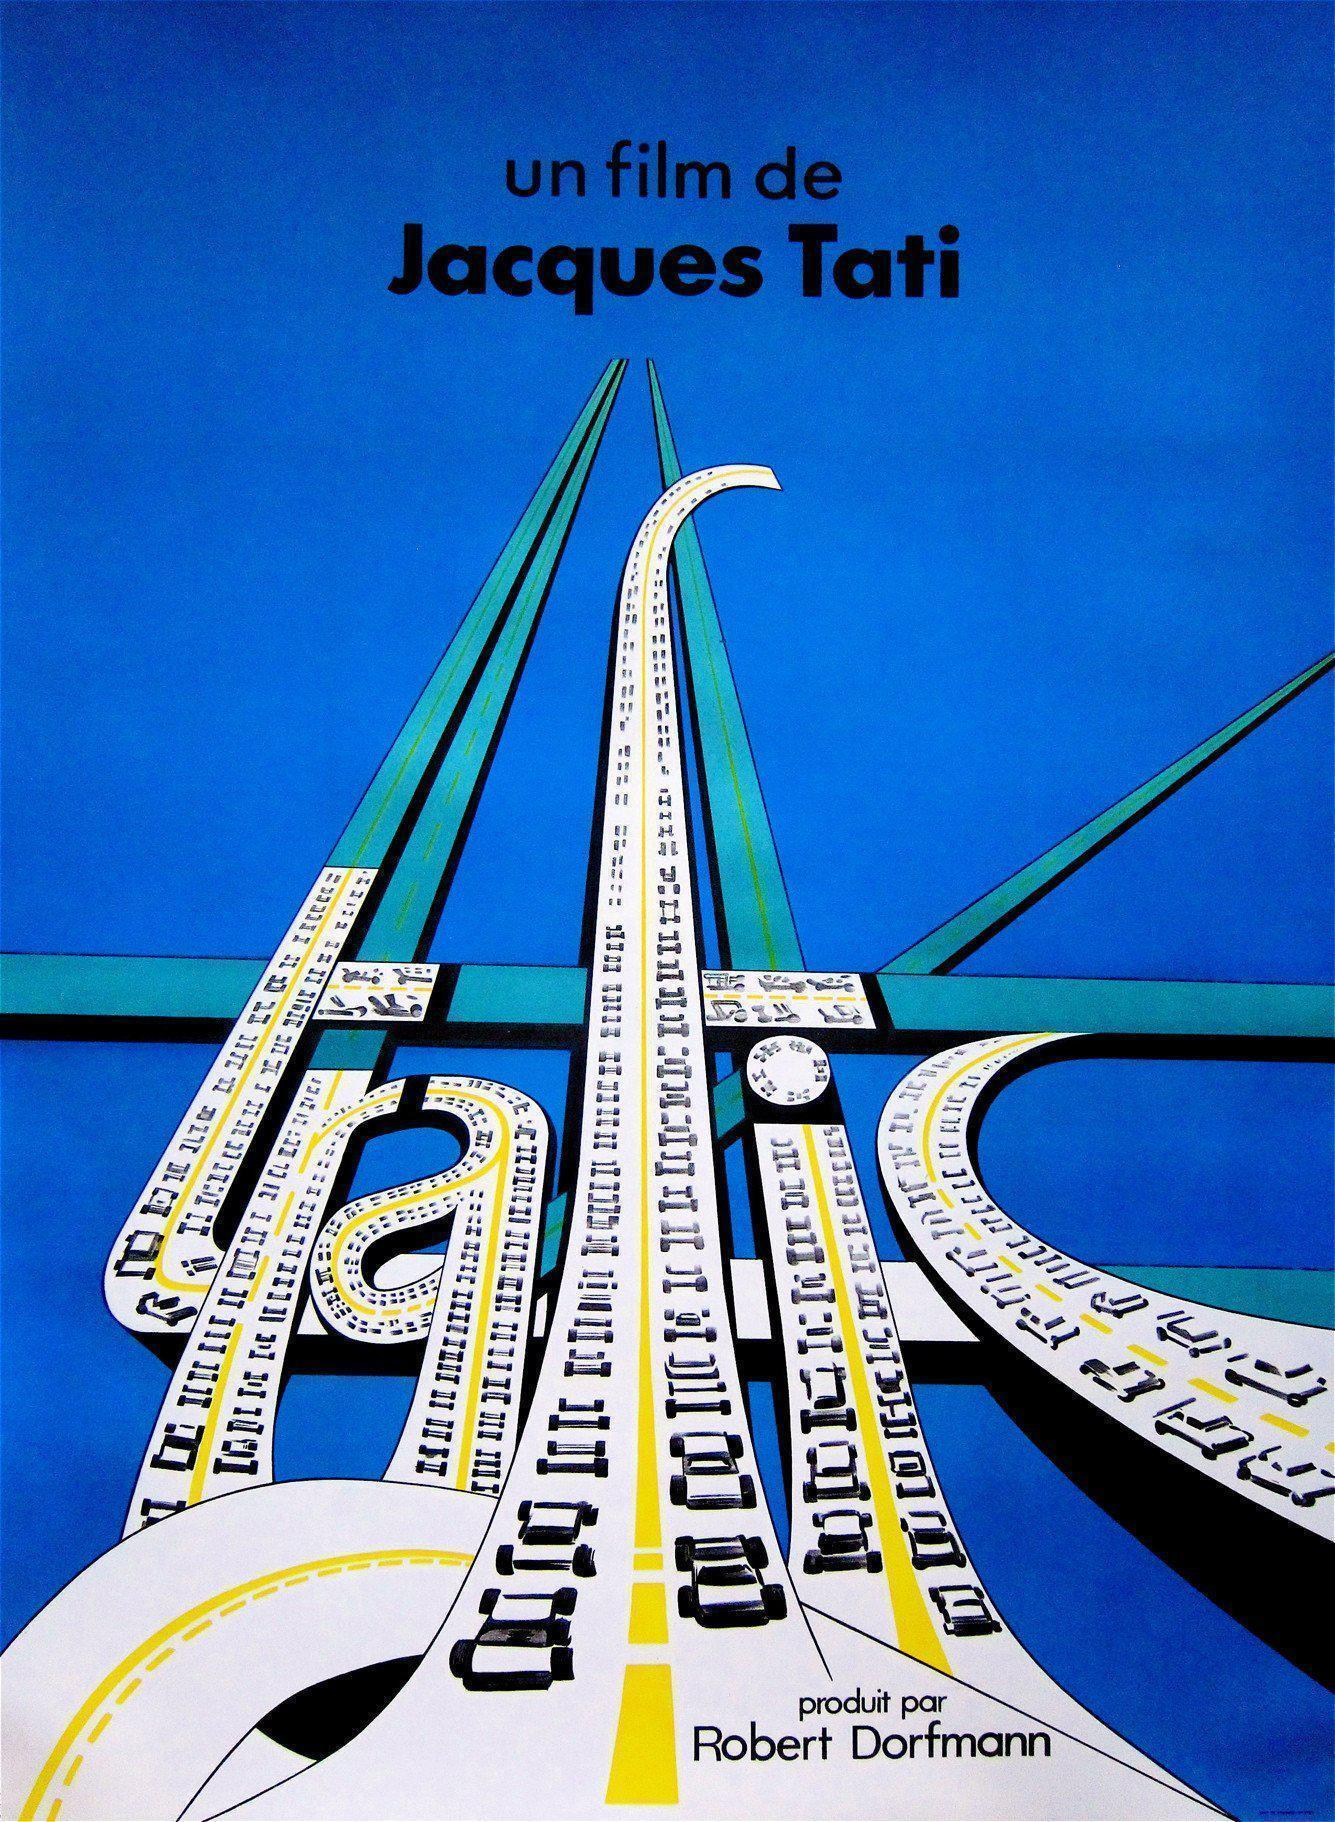 Trafic French 1 panel (47x63) Original Vintage Movie Poster